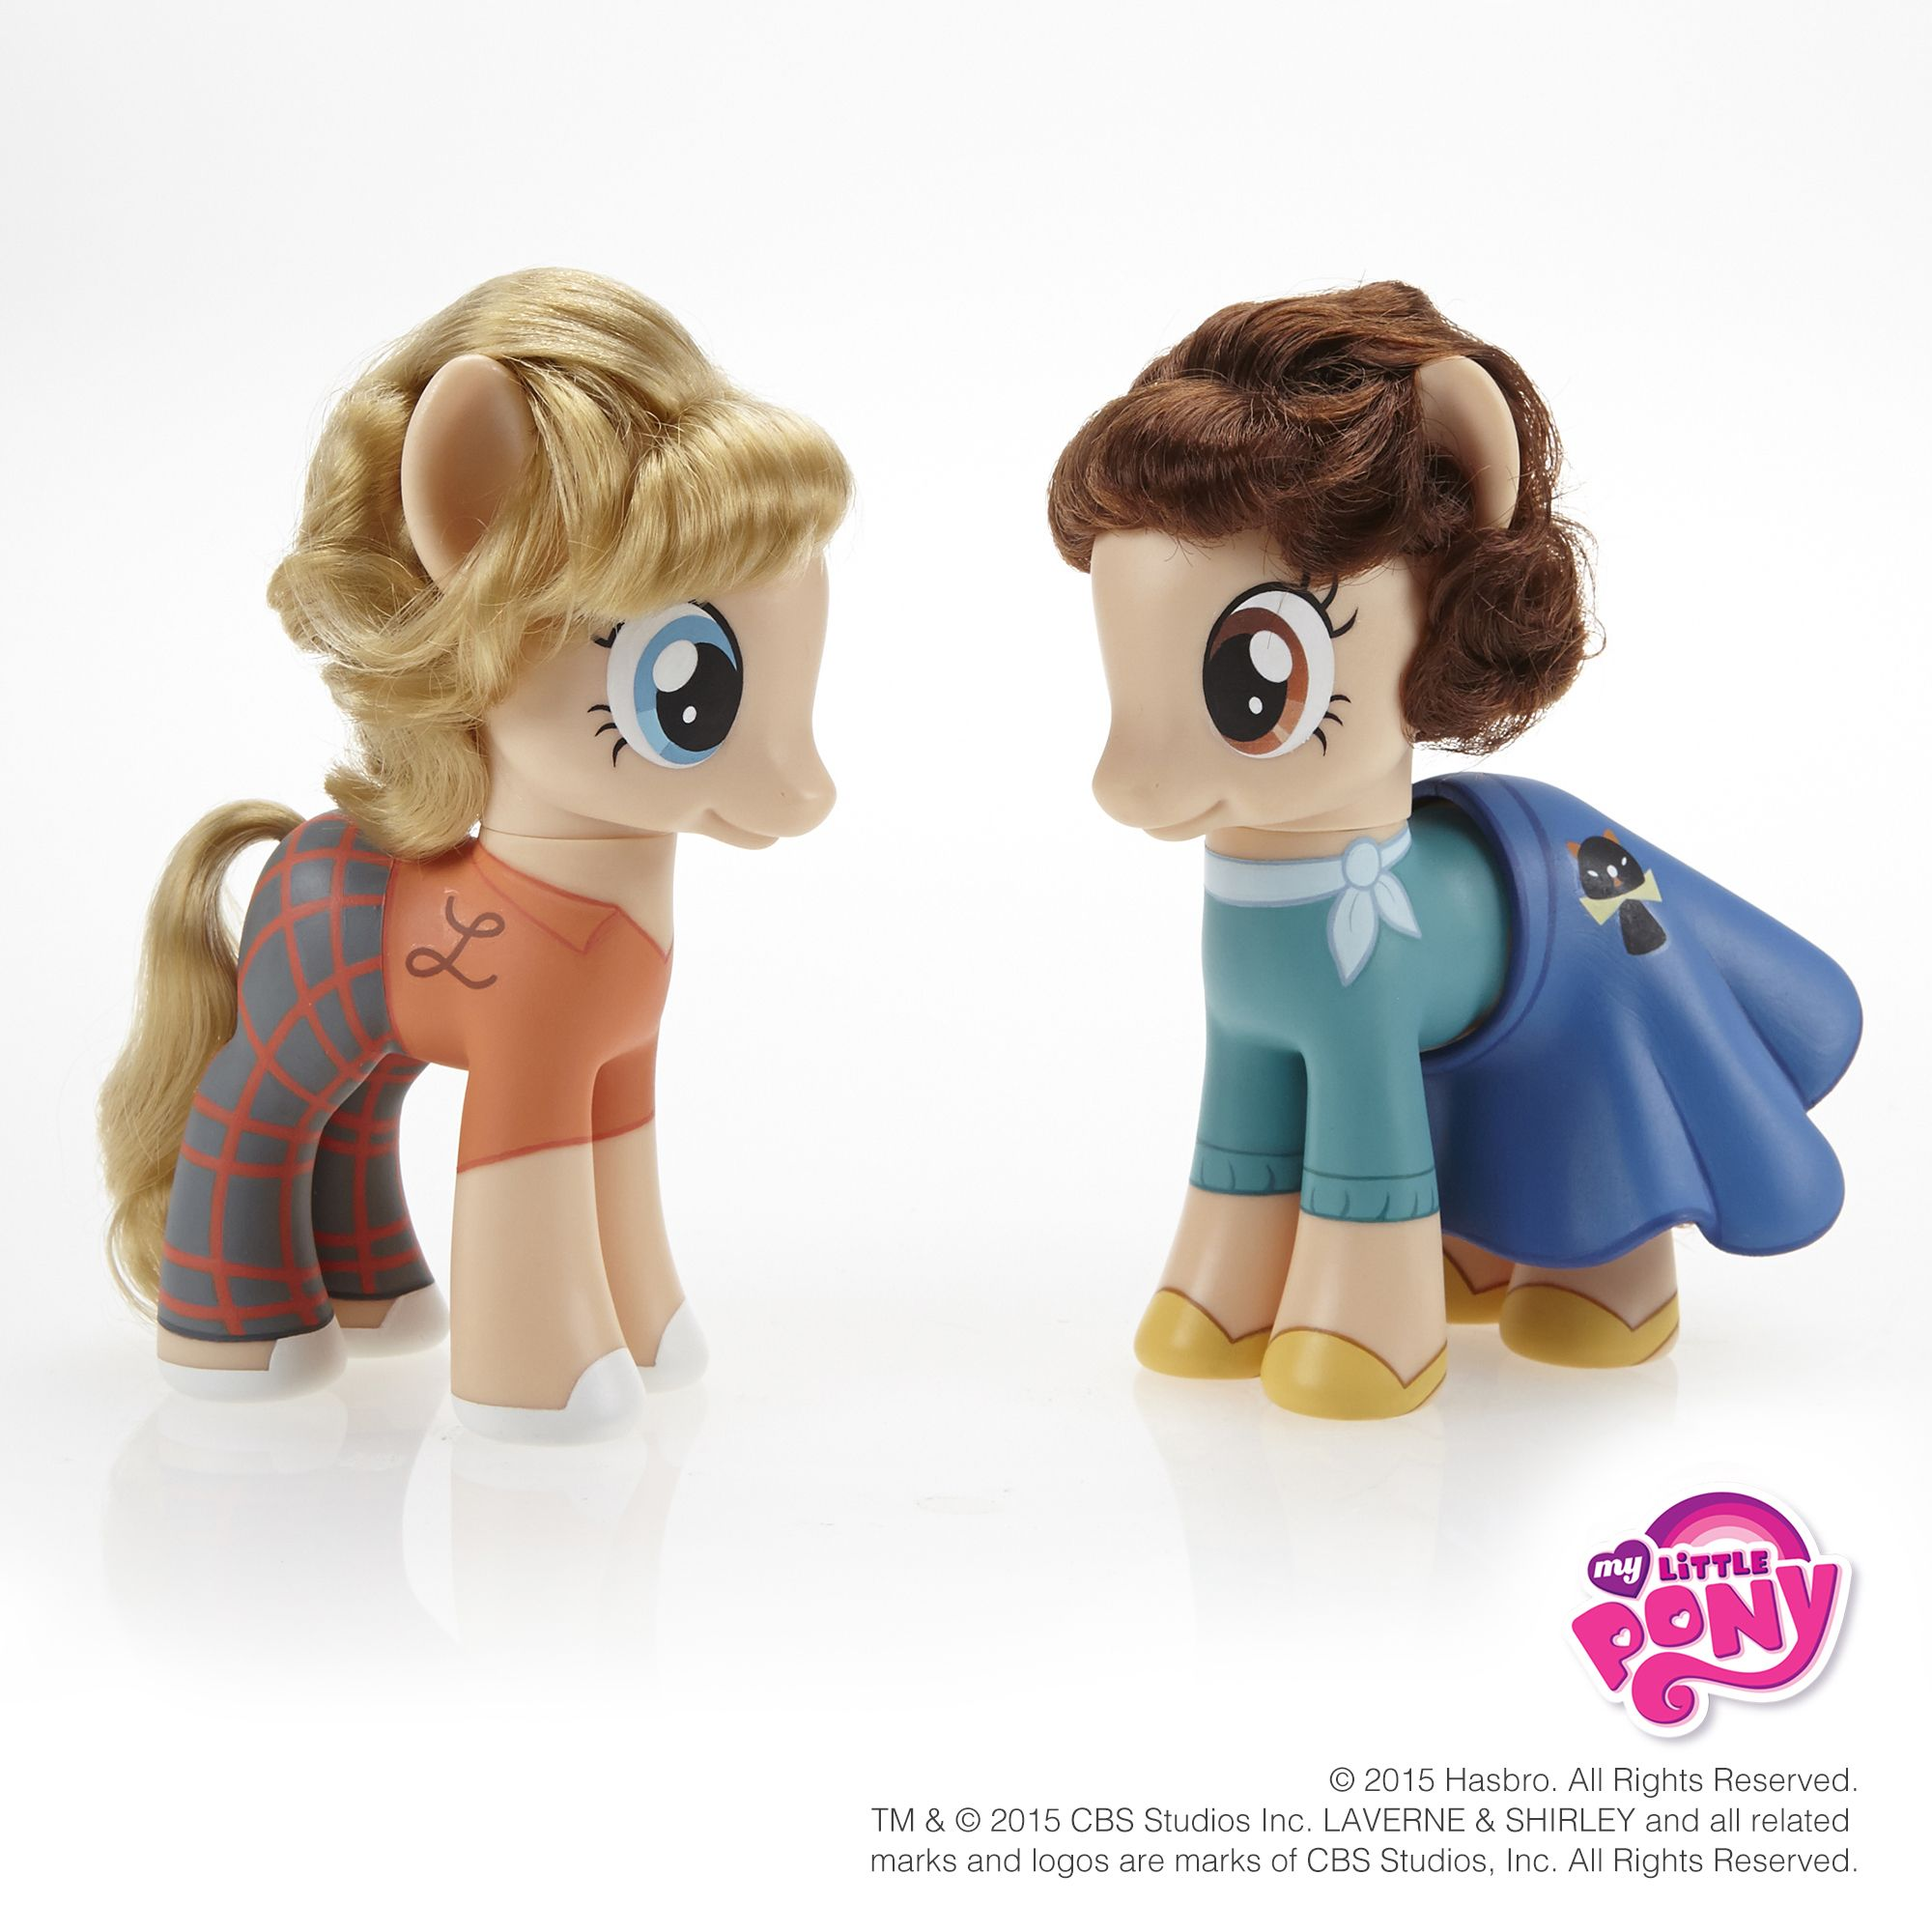 MY LITTLE PONY Brand Honors Famous Best Friends in Celebration of International Day of Friendship | Business Wire